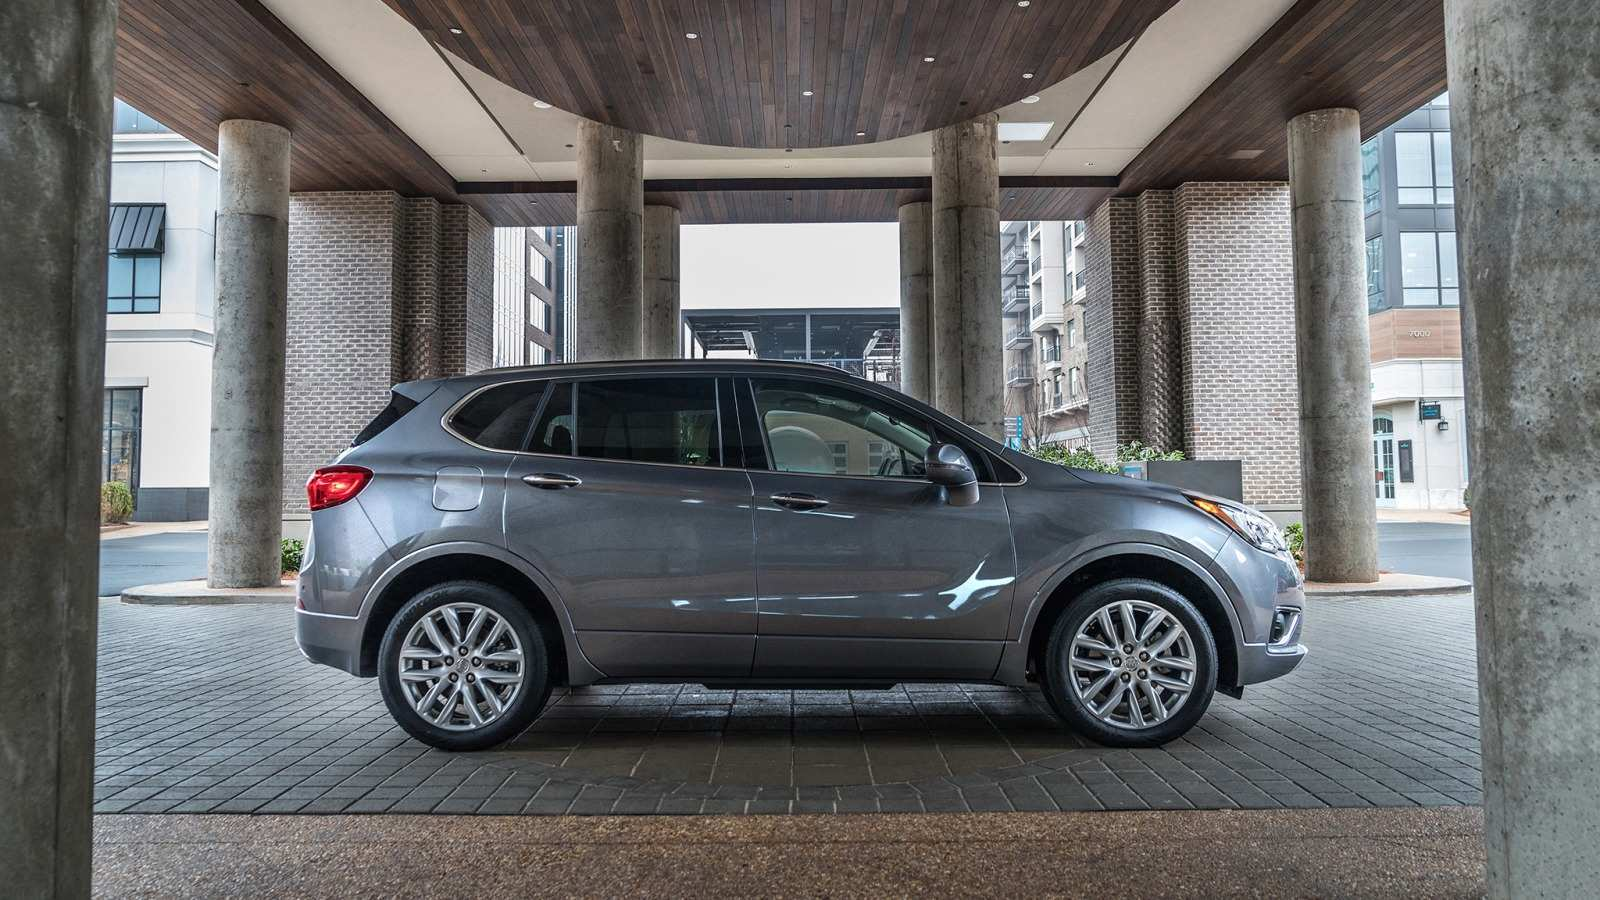 18 Concept of Best 2019 Buick Envision For Sale Spesification Style for Best 2019 Buick Envision For Sale Spesification